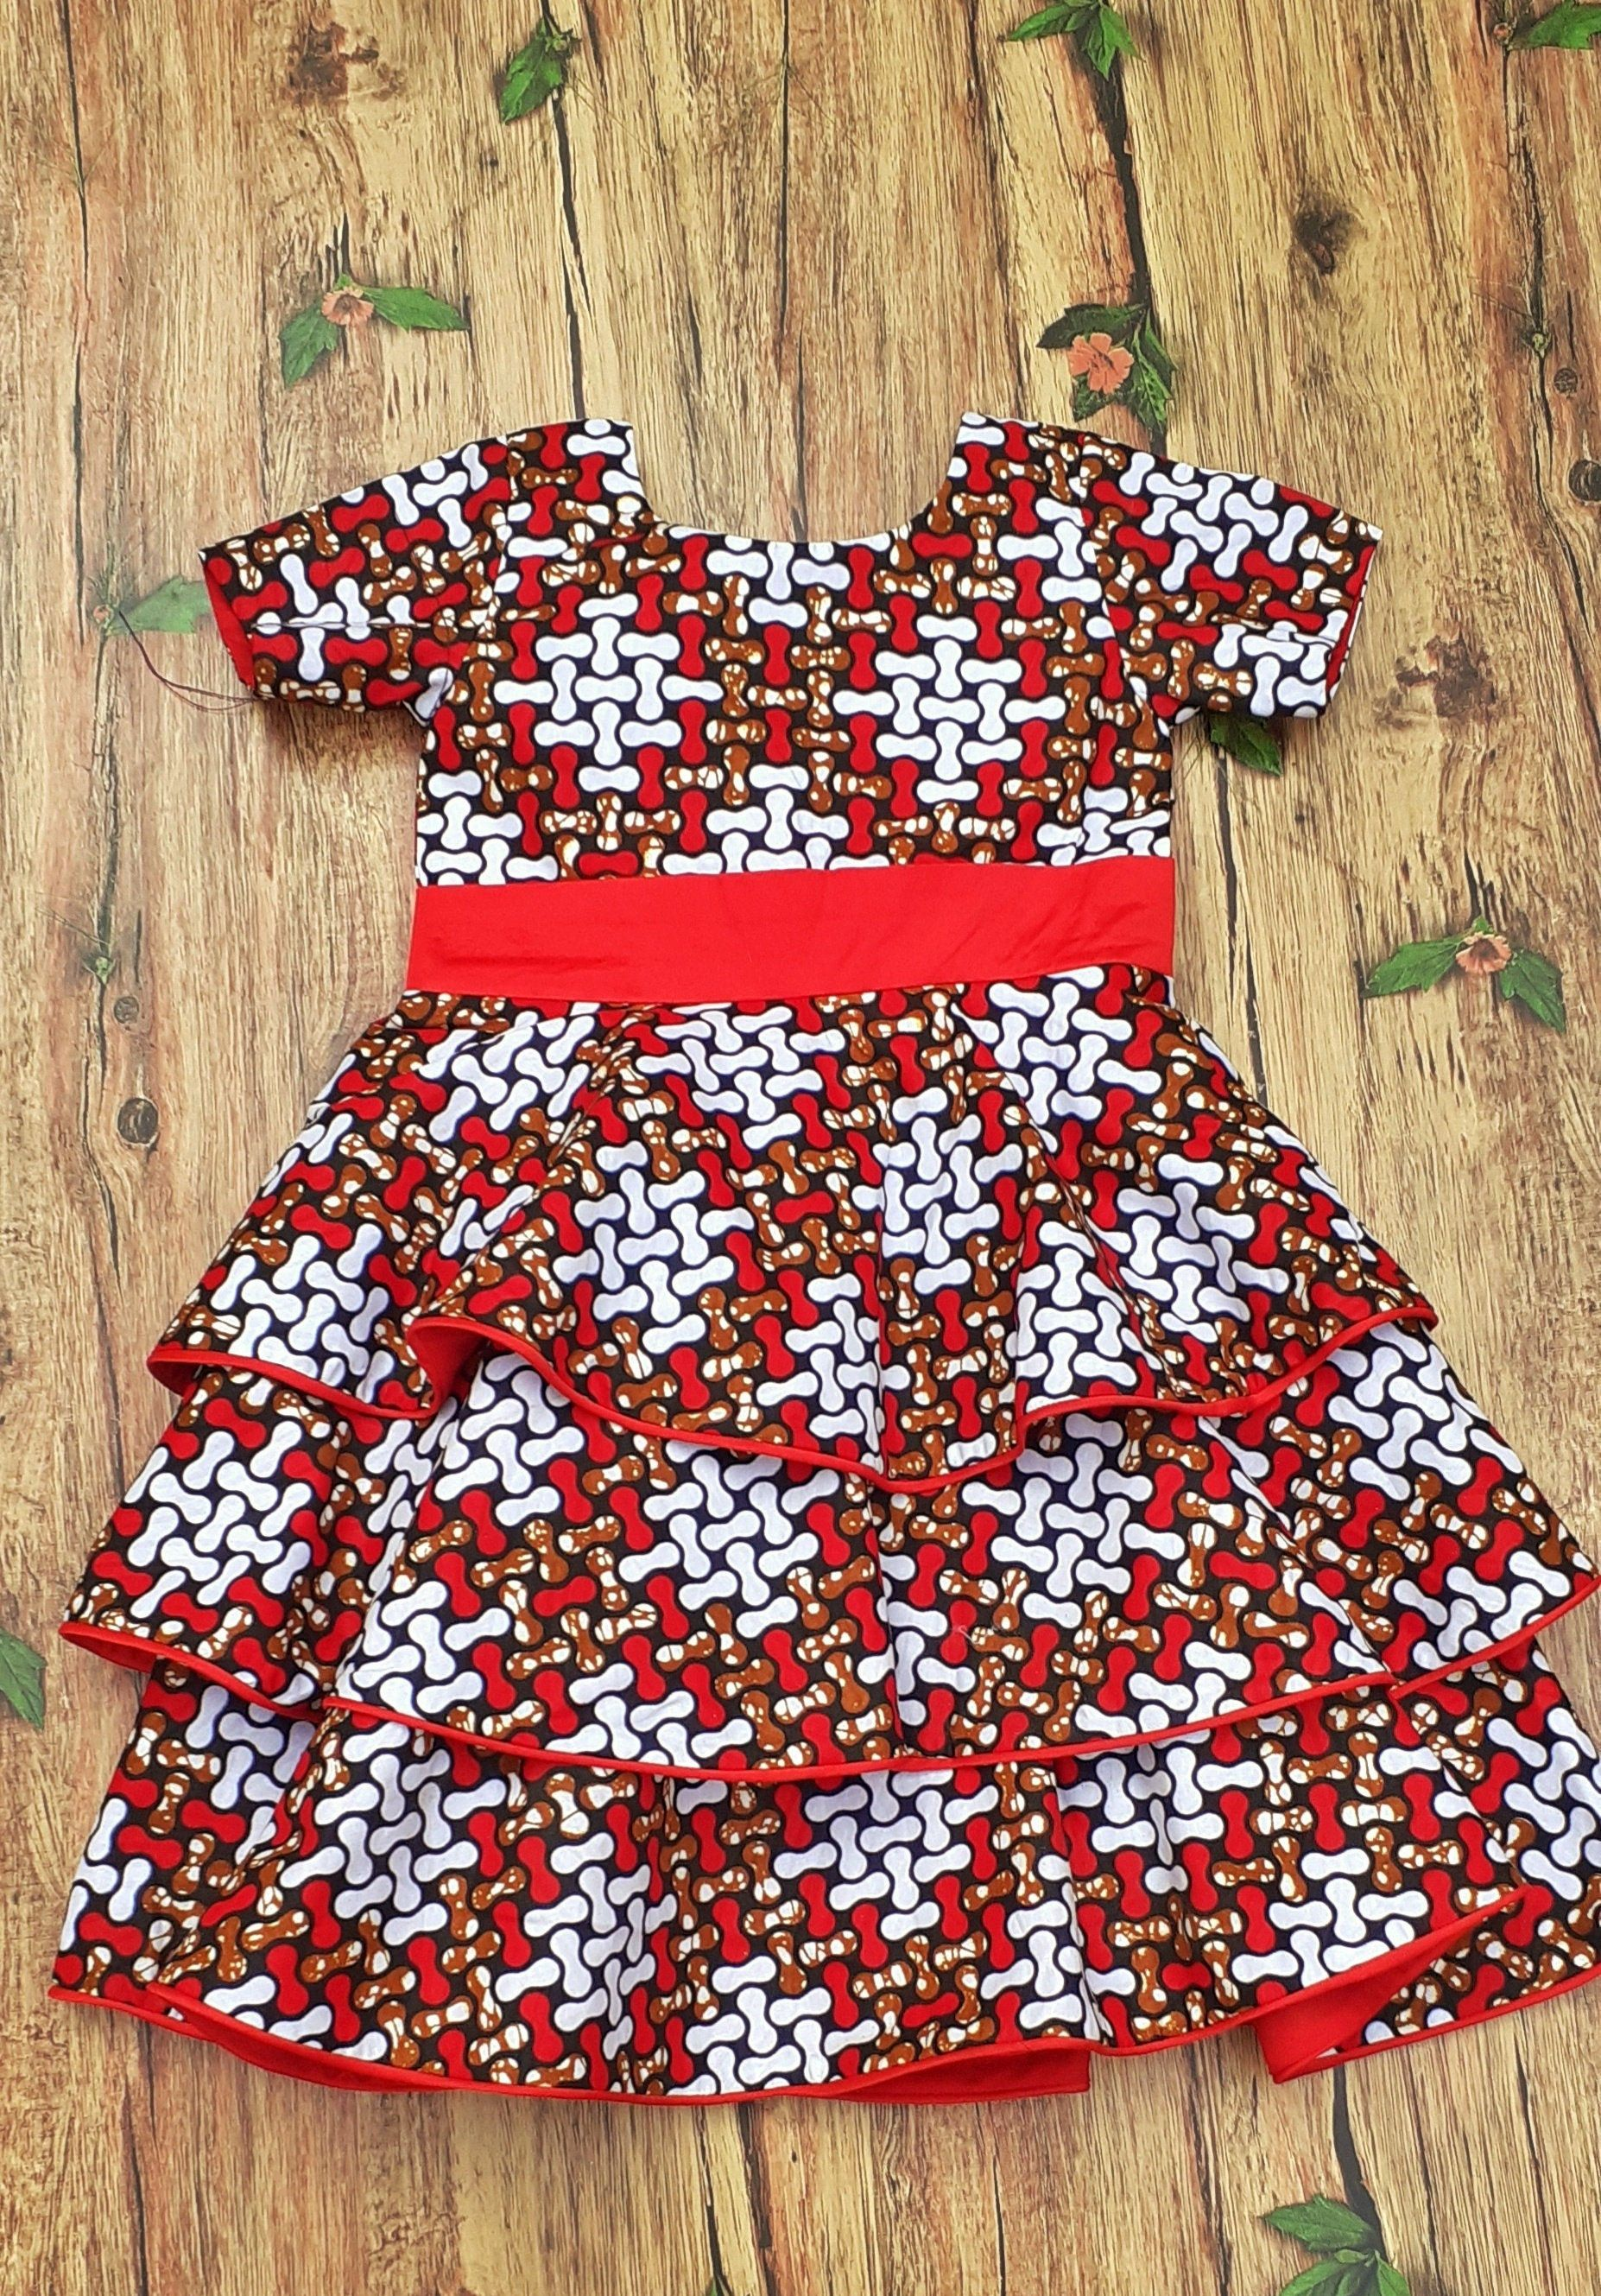 TAORE Baby Toddler Kids Baby Girls Long Sleeve Lace Princess Sundress Formal Dress Outfits